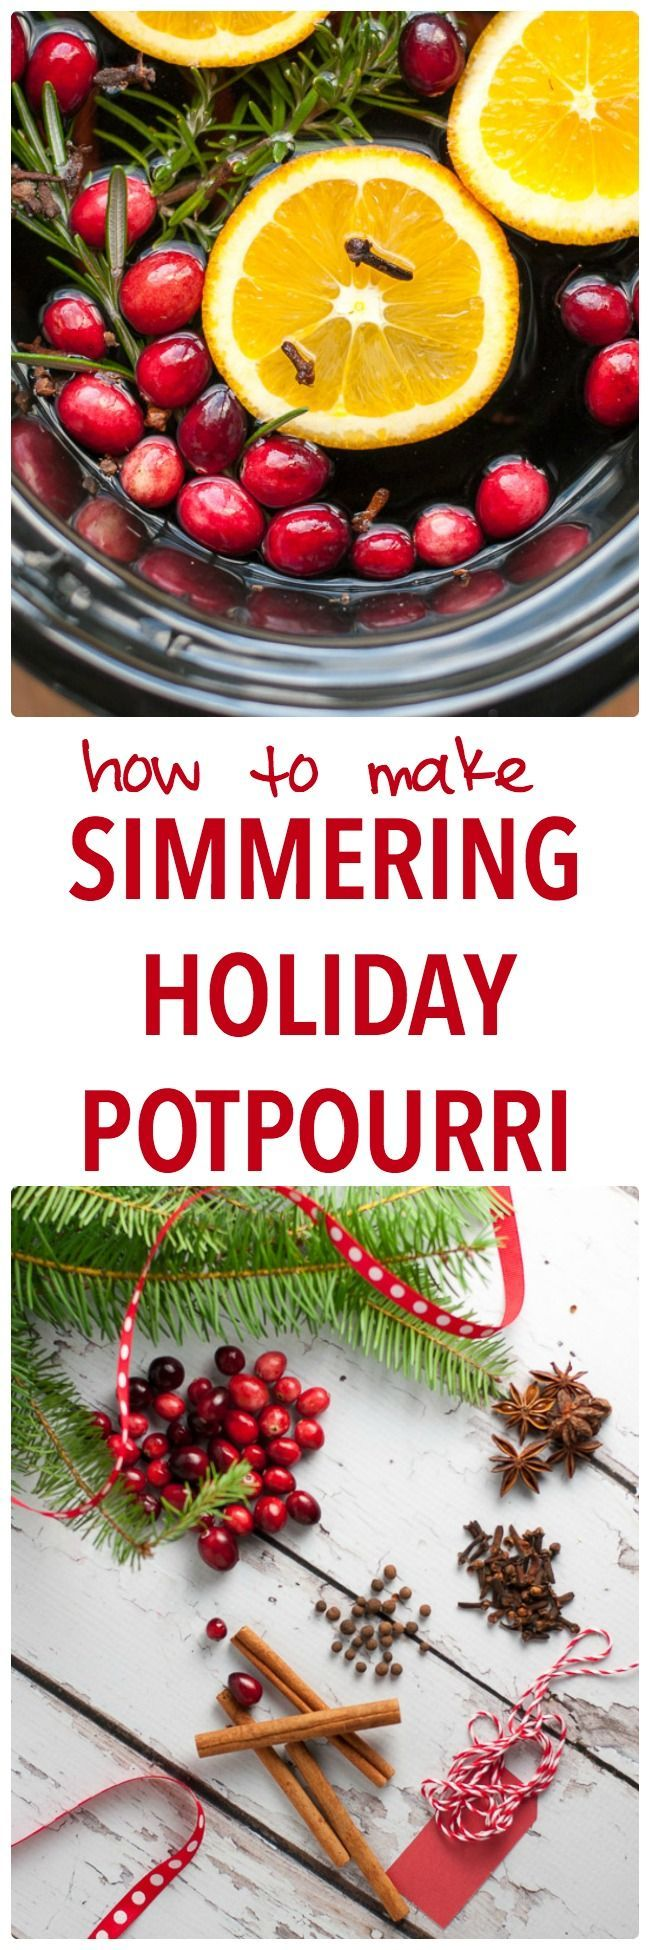 How to Make Simmering Holiday Potpourri on your stove top or in your slow cooker. Makes your home smell like Christmas! Includes printable gift tags, too. #simmering #Christmas #potpourri #stovetop #slowcooker #crockpot #cinnamon #cloves #oranges #cranberries #staranise #printable #DIY #GiftTags #easy #packaging #HouseSmells #airfreshener #hostessgift